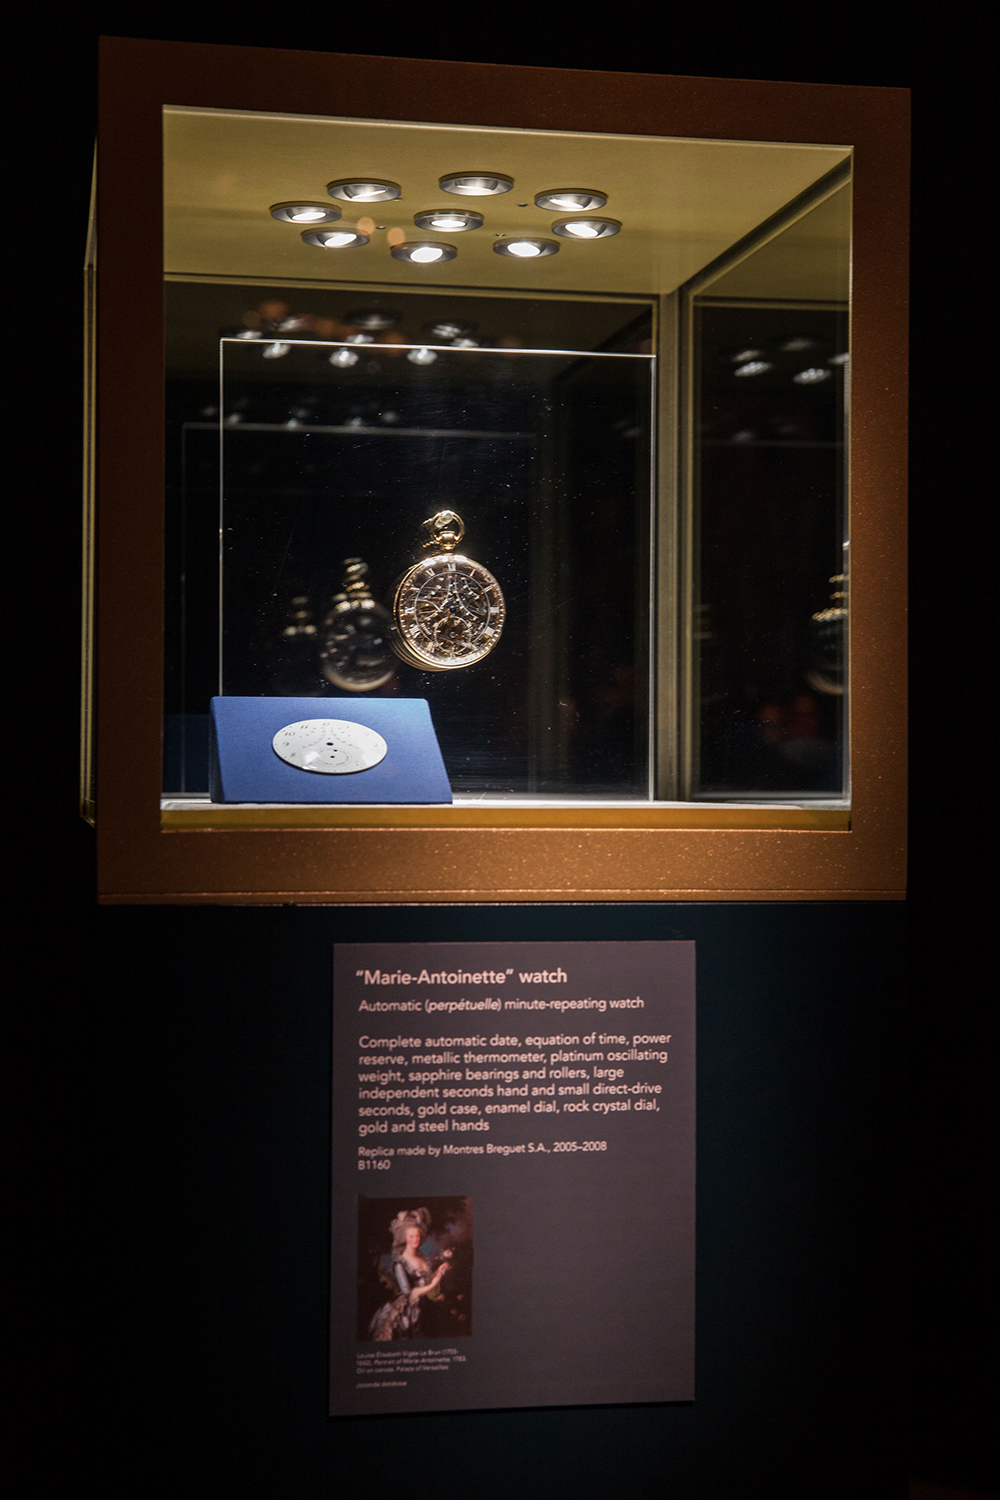 The Breguet Marie-Antoinette armored showcase presented at the Fine Arts Museums of San Francisco (CA)